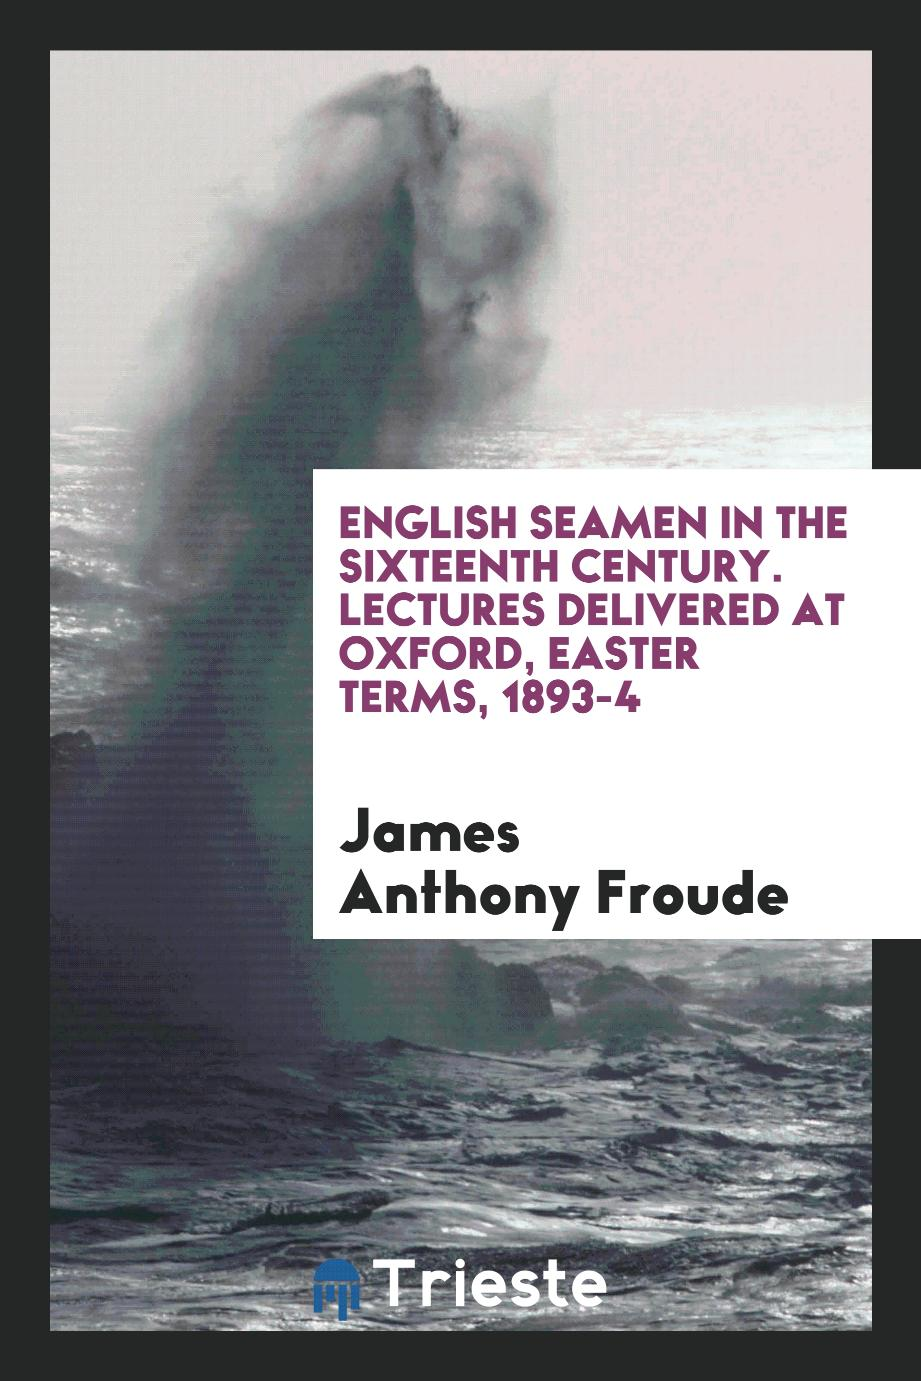 English seamen in the sixteenth century. Lectures delivered at Oxford, Easter terms, 1893-4